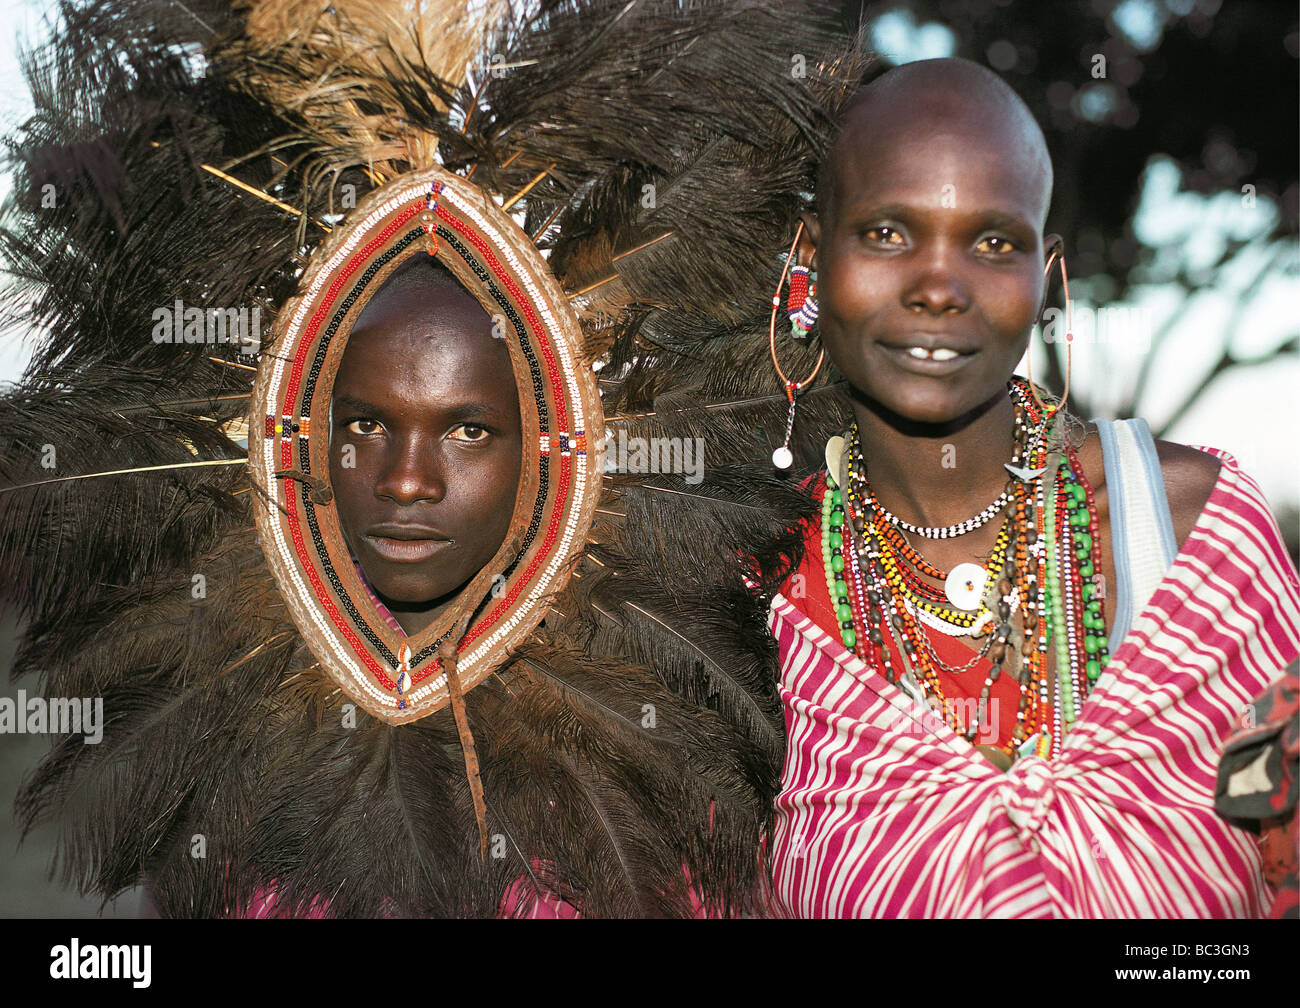 Maasai man traditional ostrich feather headdress married woman bead necklaces earrings Masai Mara National Reserve - Stock Image